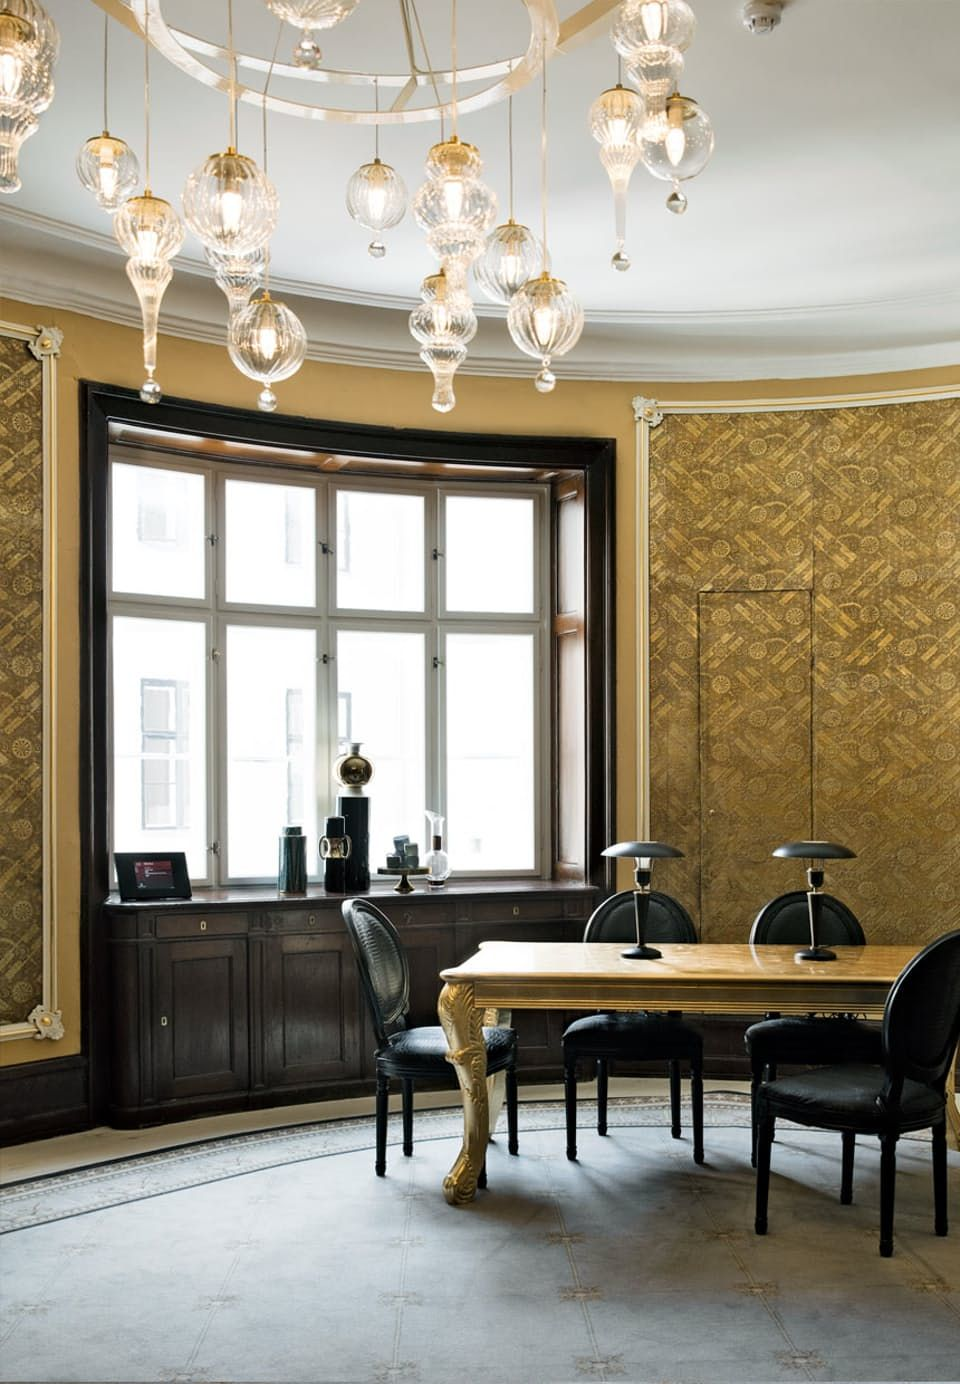 Exclusive interior design for home - Golden Office Space With Elegant And Exclusive Interior Design We Love The Golden Wallpaper And